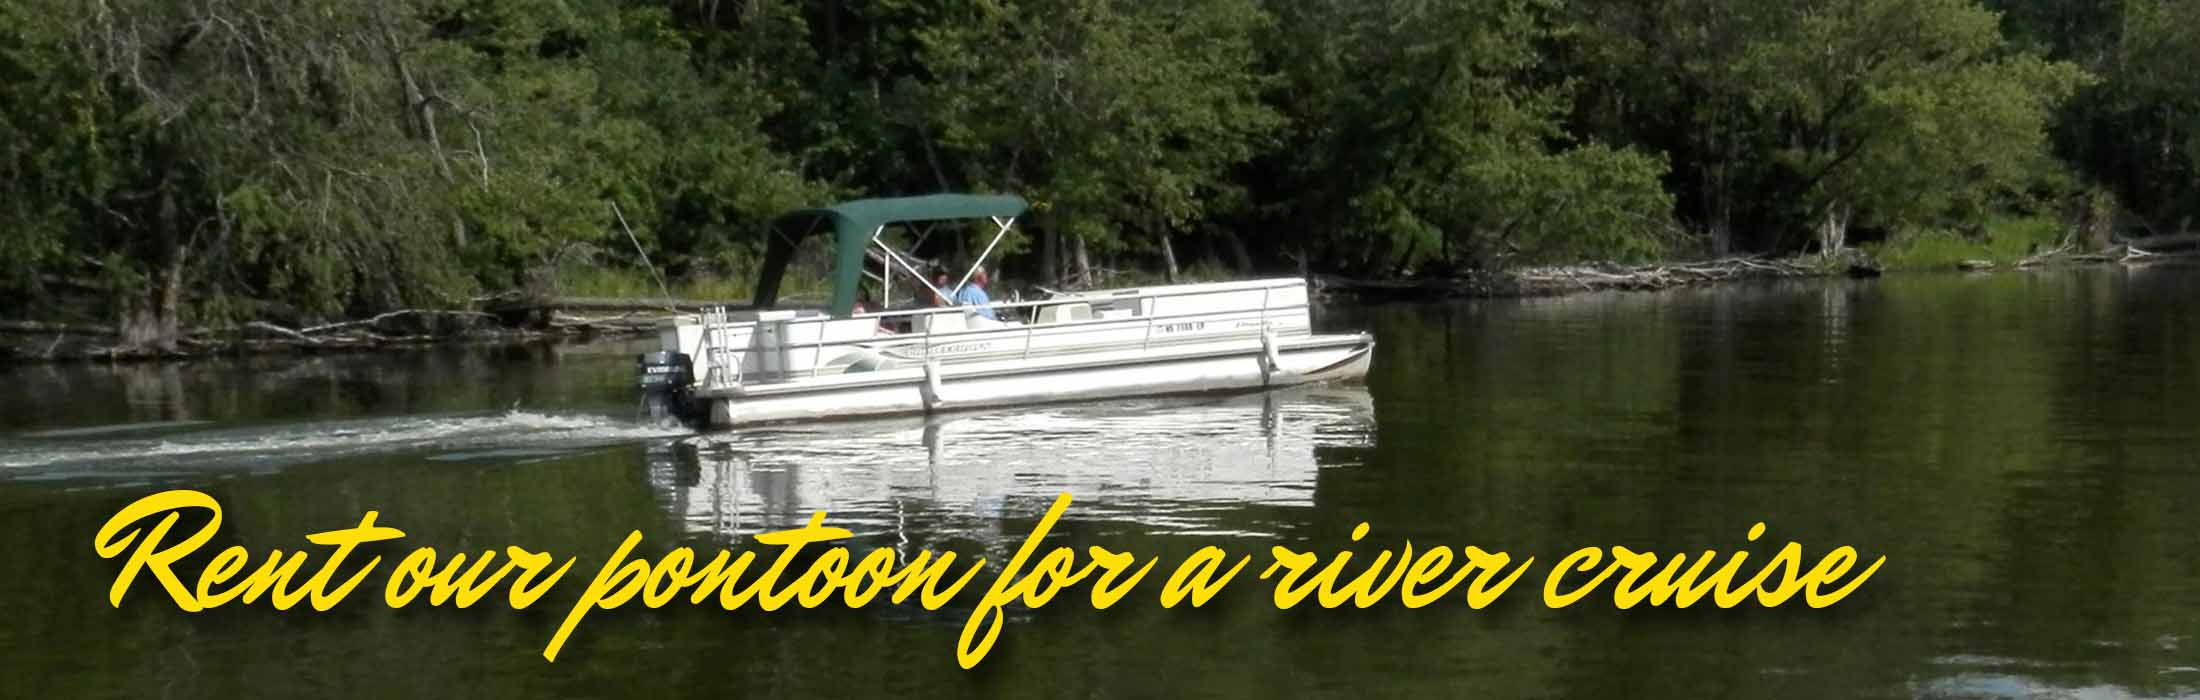 pontoon-rental-beloit-rock-river-the-rock-bar